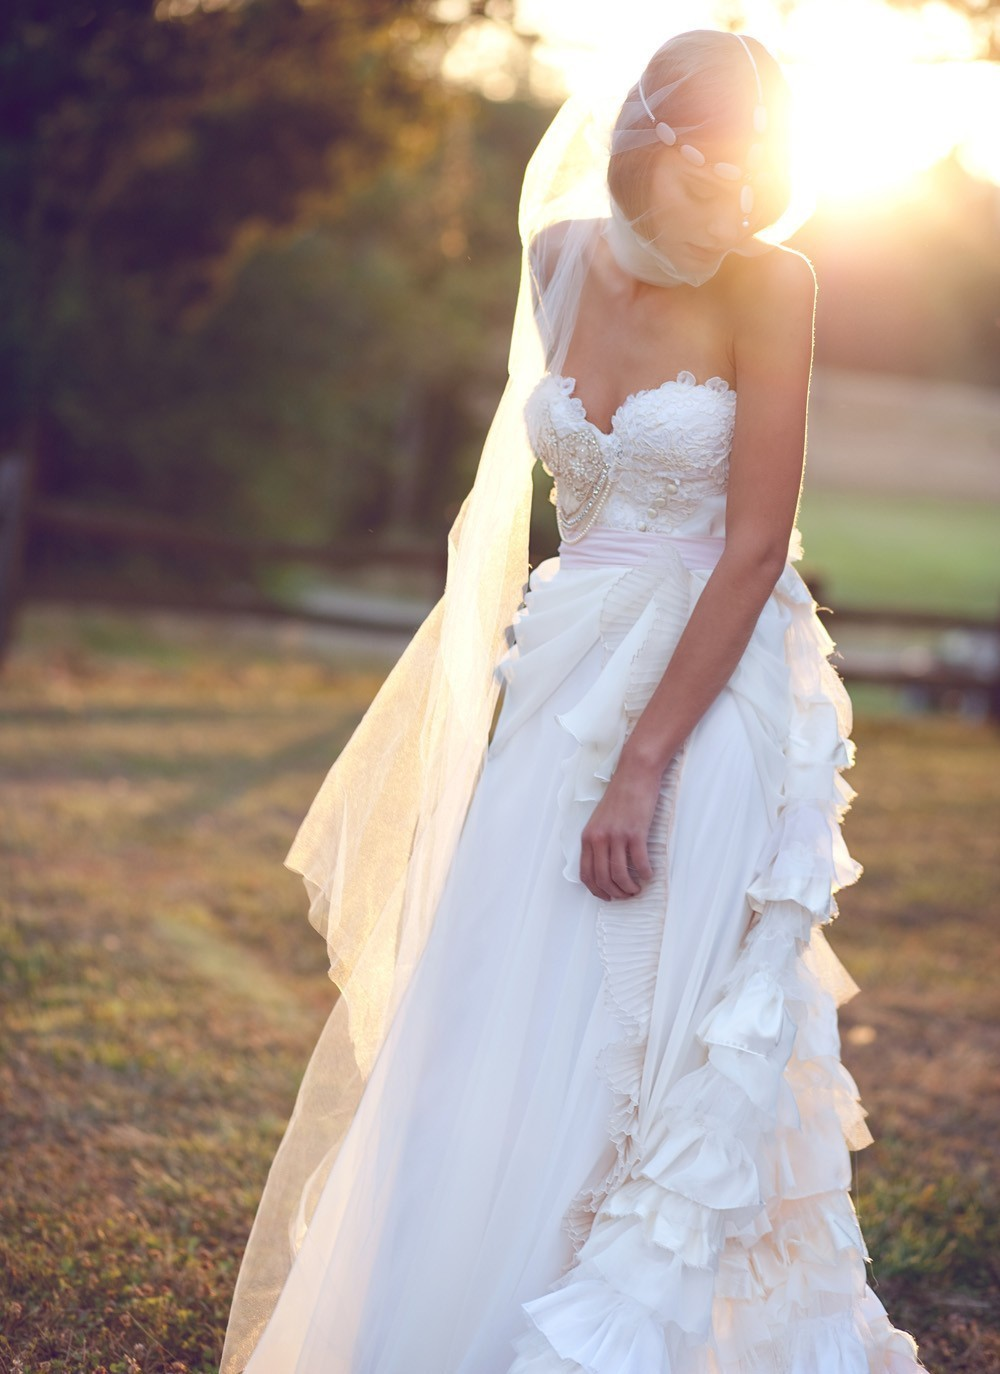 handmade wedding dresses etsy bridal gown bohemian claire lafaye